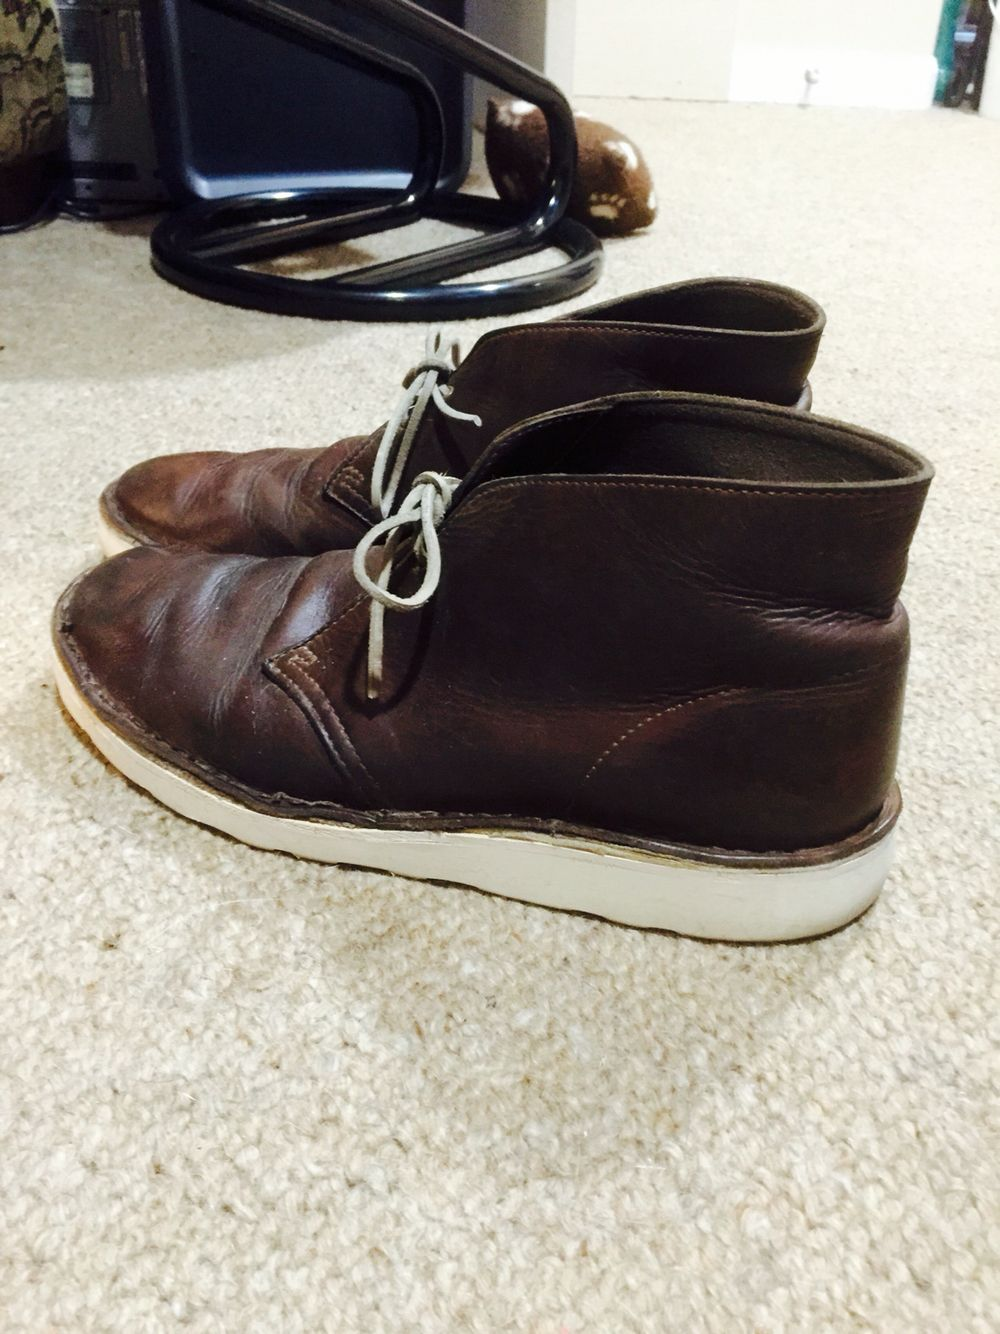 Resoled beeswax Clark's desert boots. Vibram soles done at The Shoe Store in Brighton MI.